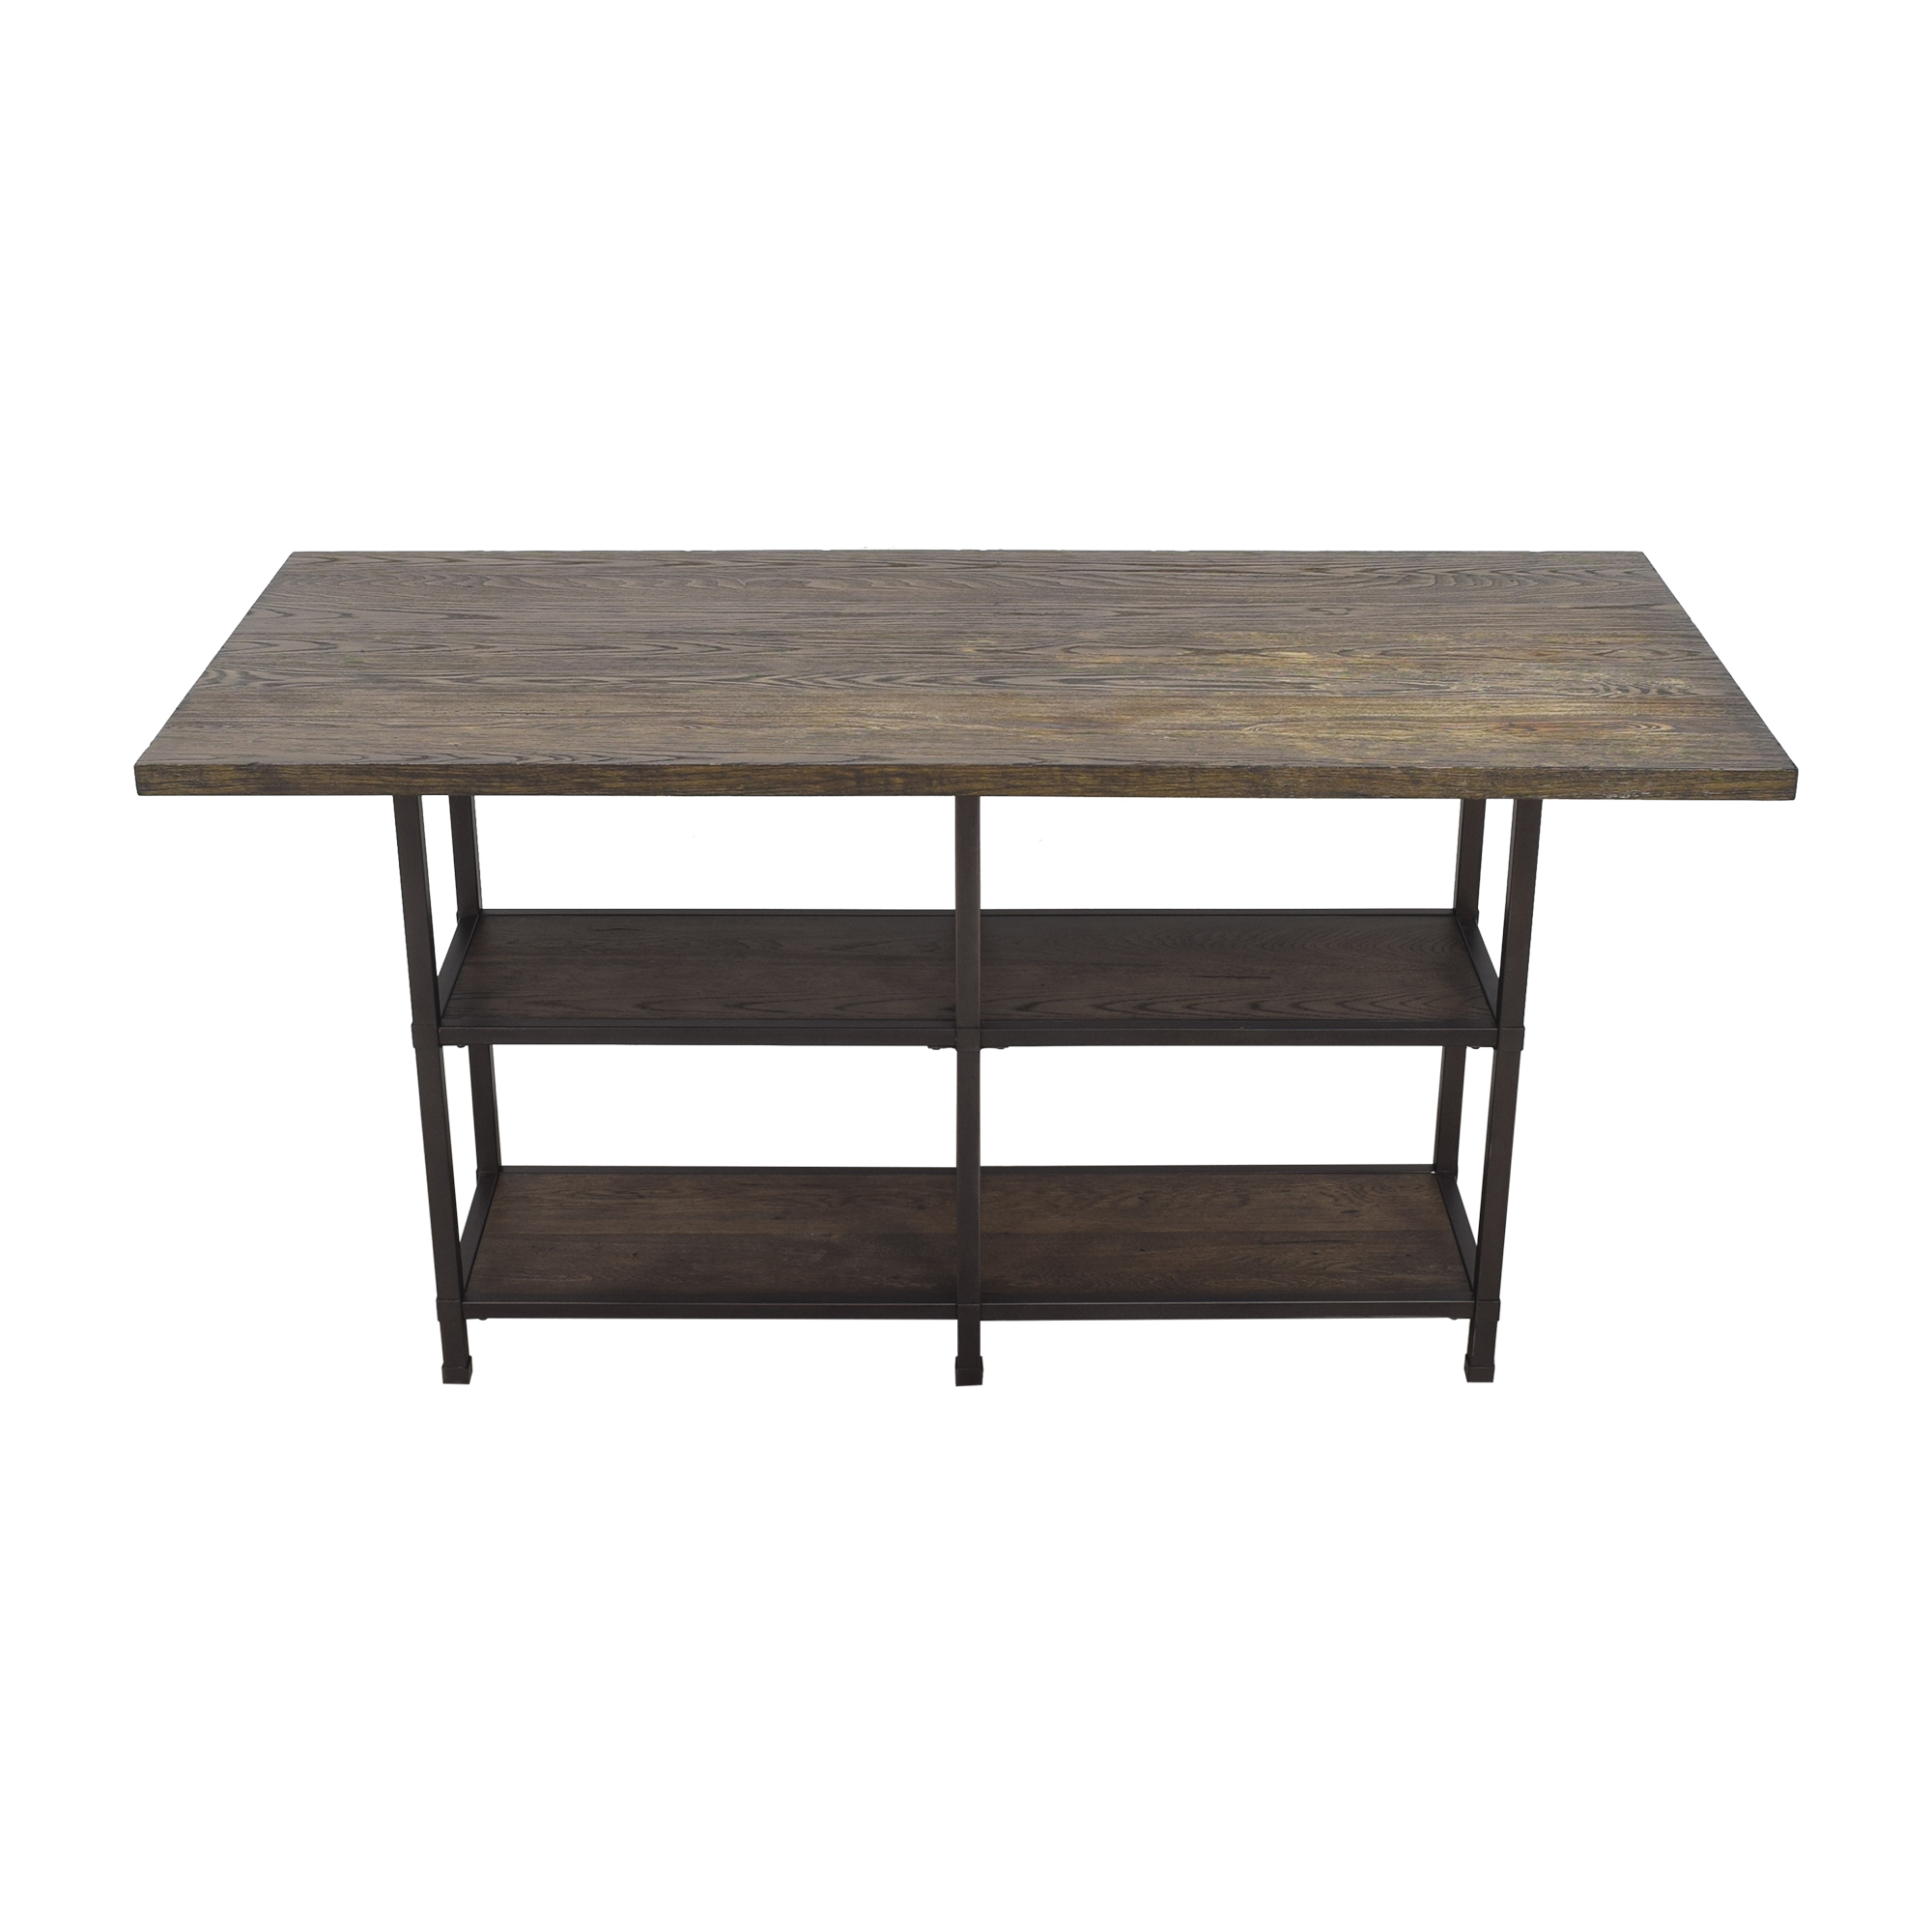 Wayfair Wayfair Greyleigh Cairo Dining Table for sale